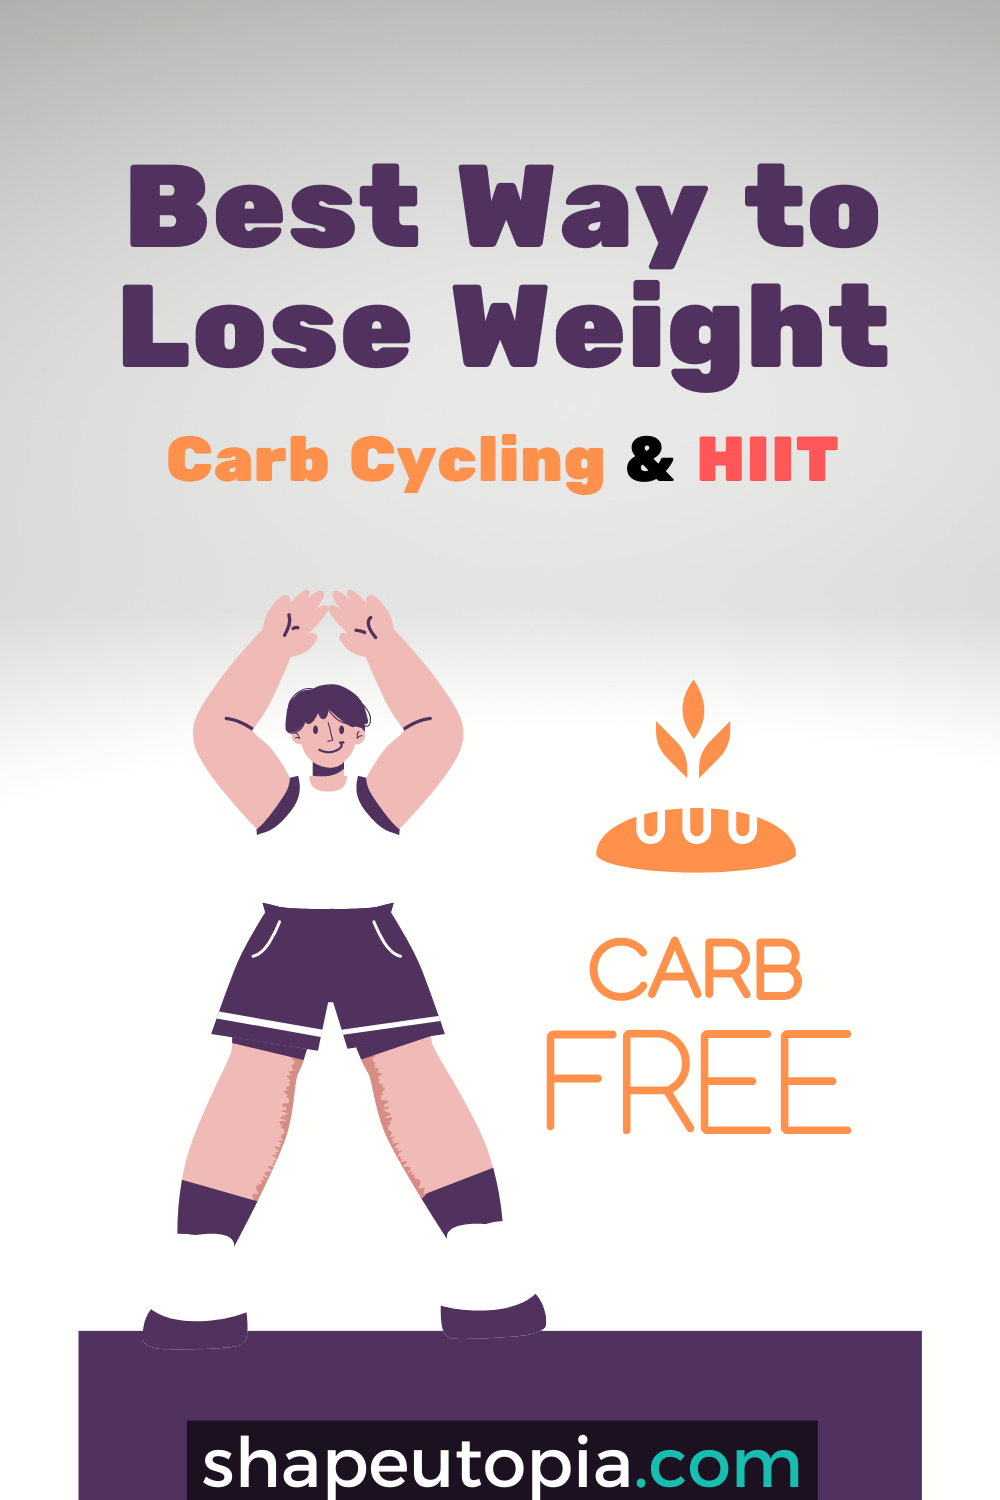 Carb Cycling and HIIT